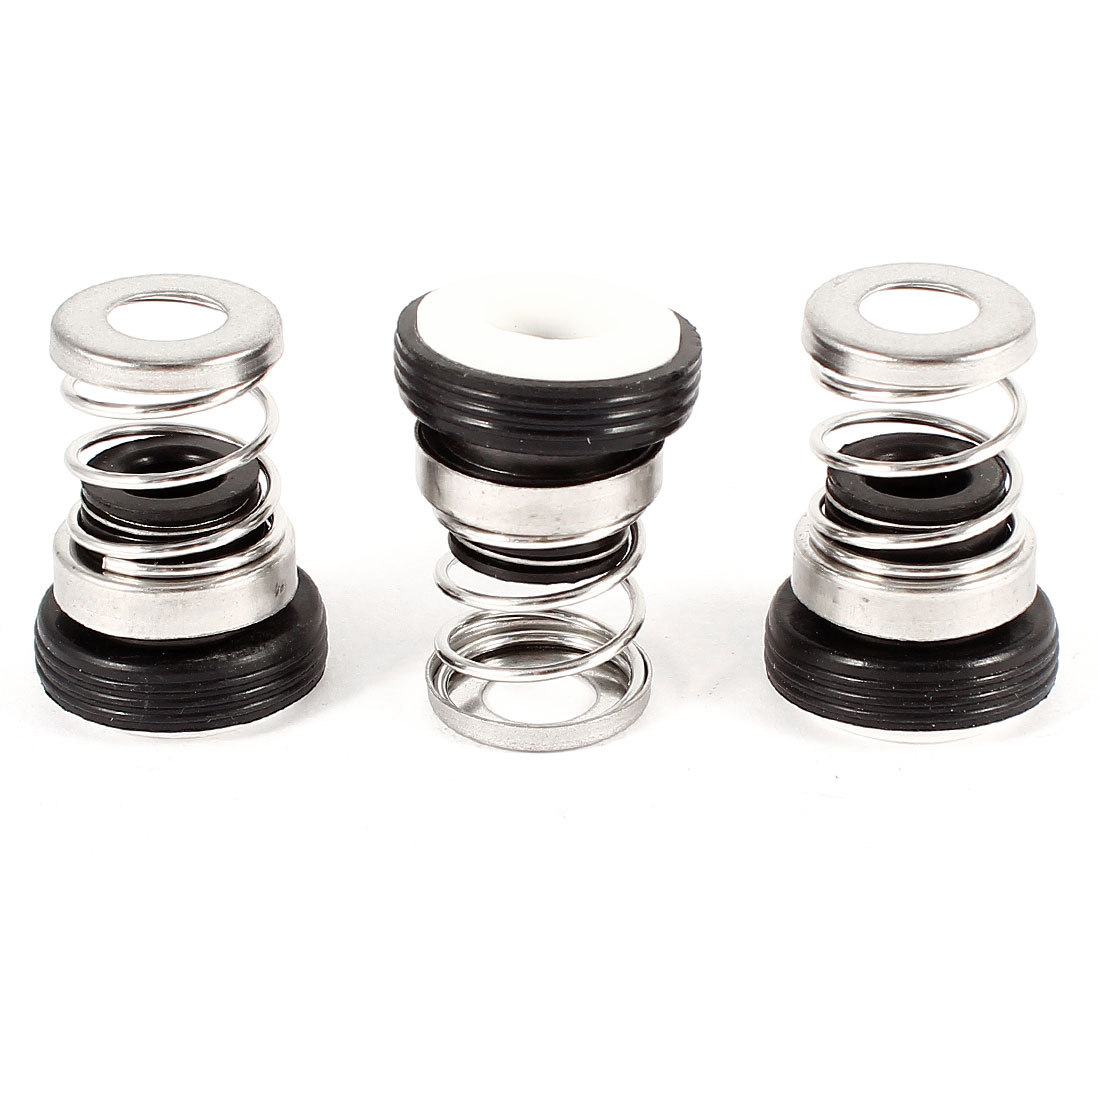 3PCS Ceramic Ring Single Spring Rubber Bellows Water Pumps Mechanical Seal 9mm Inner Dia